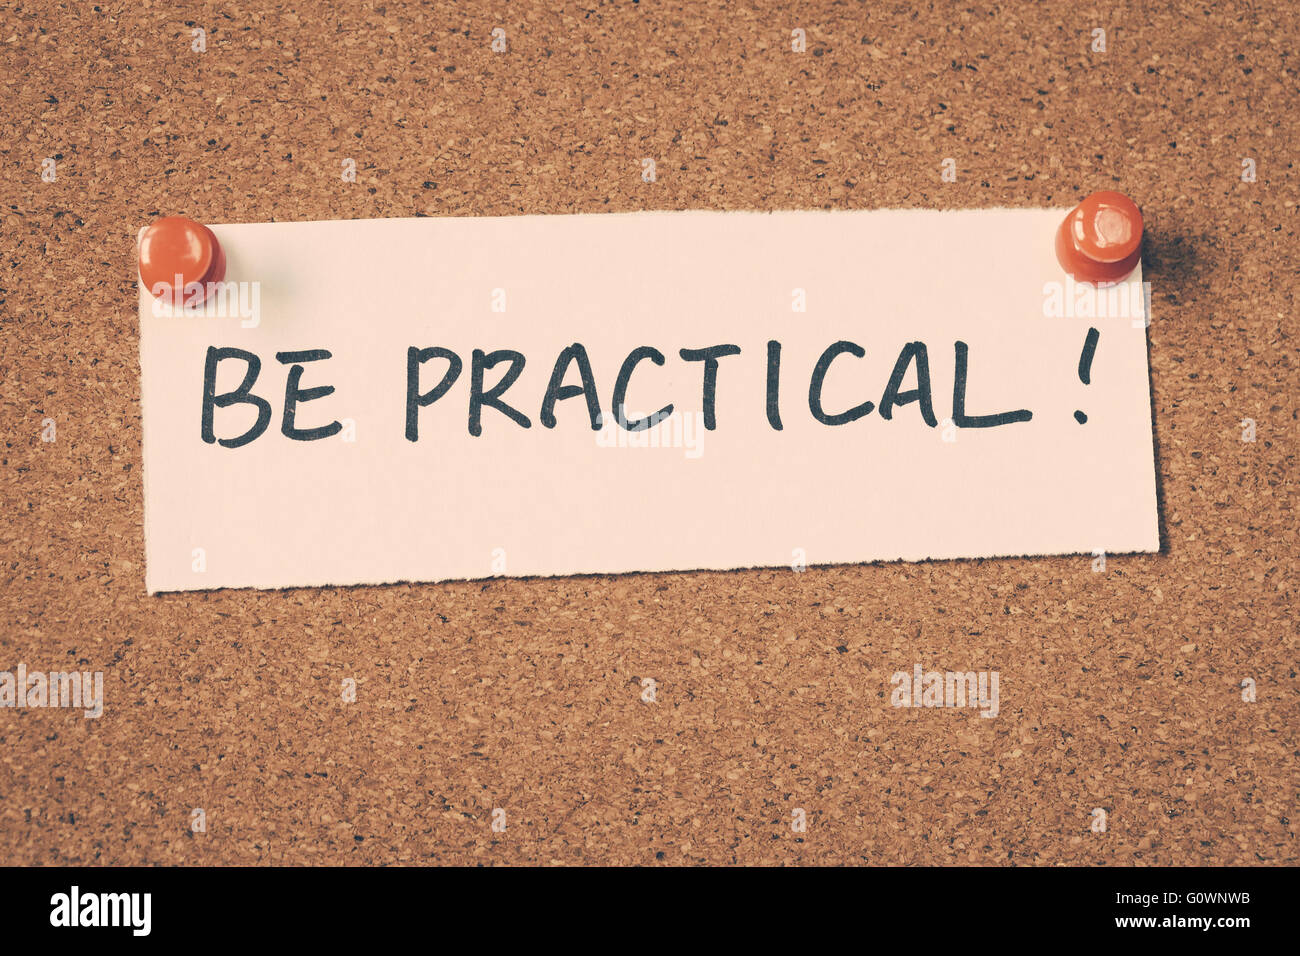 be practical - Stock Image